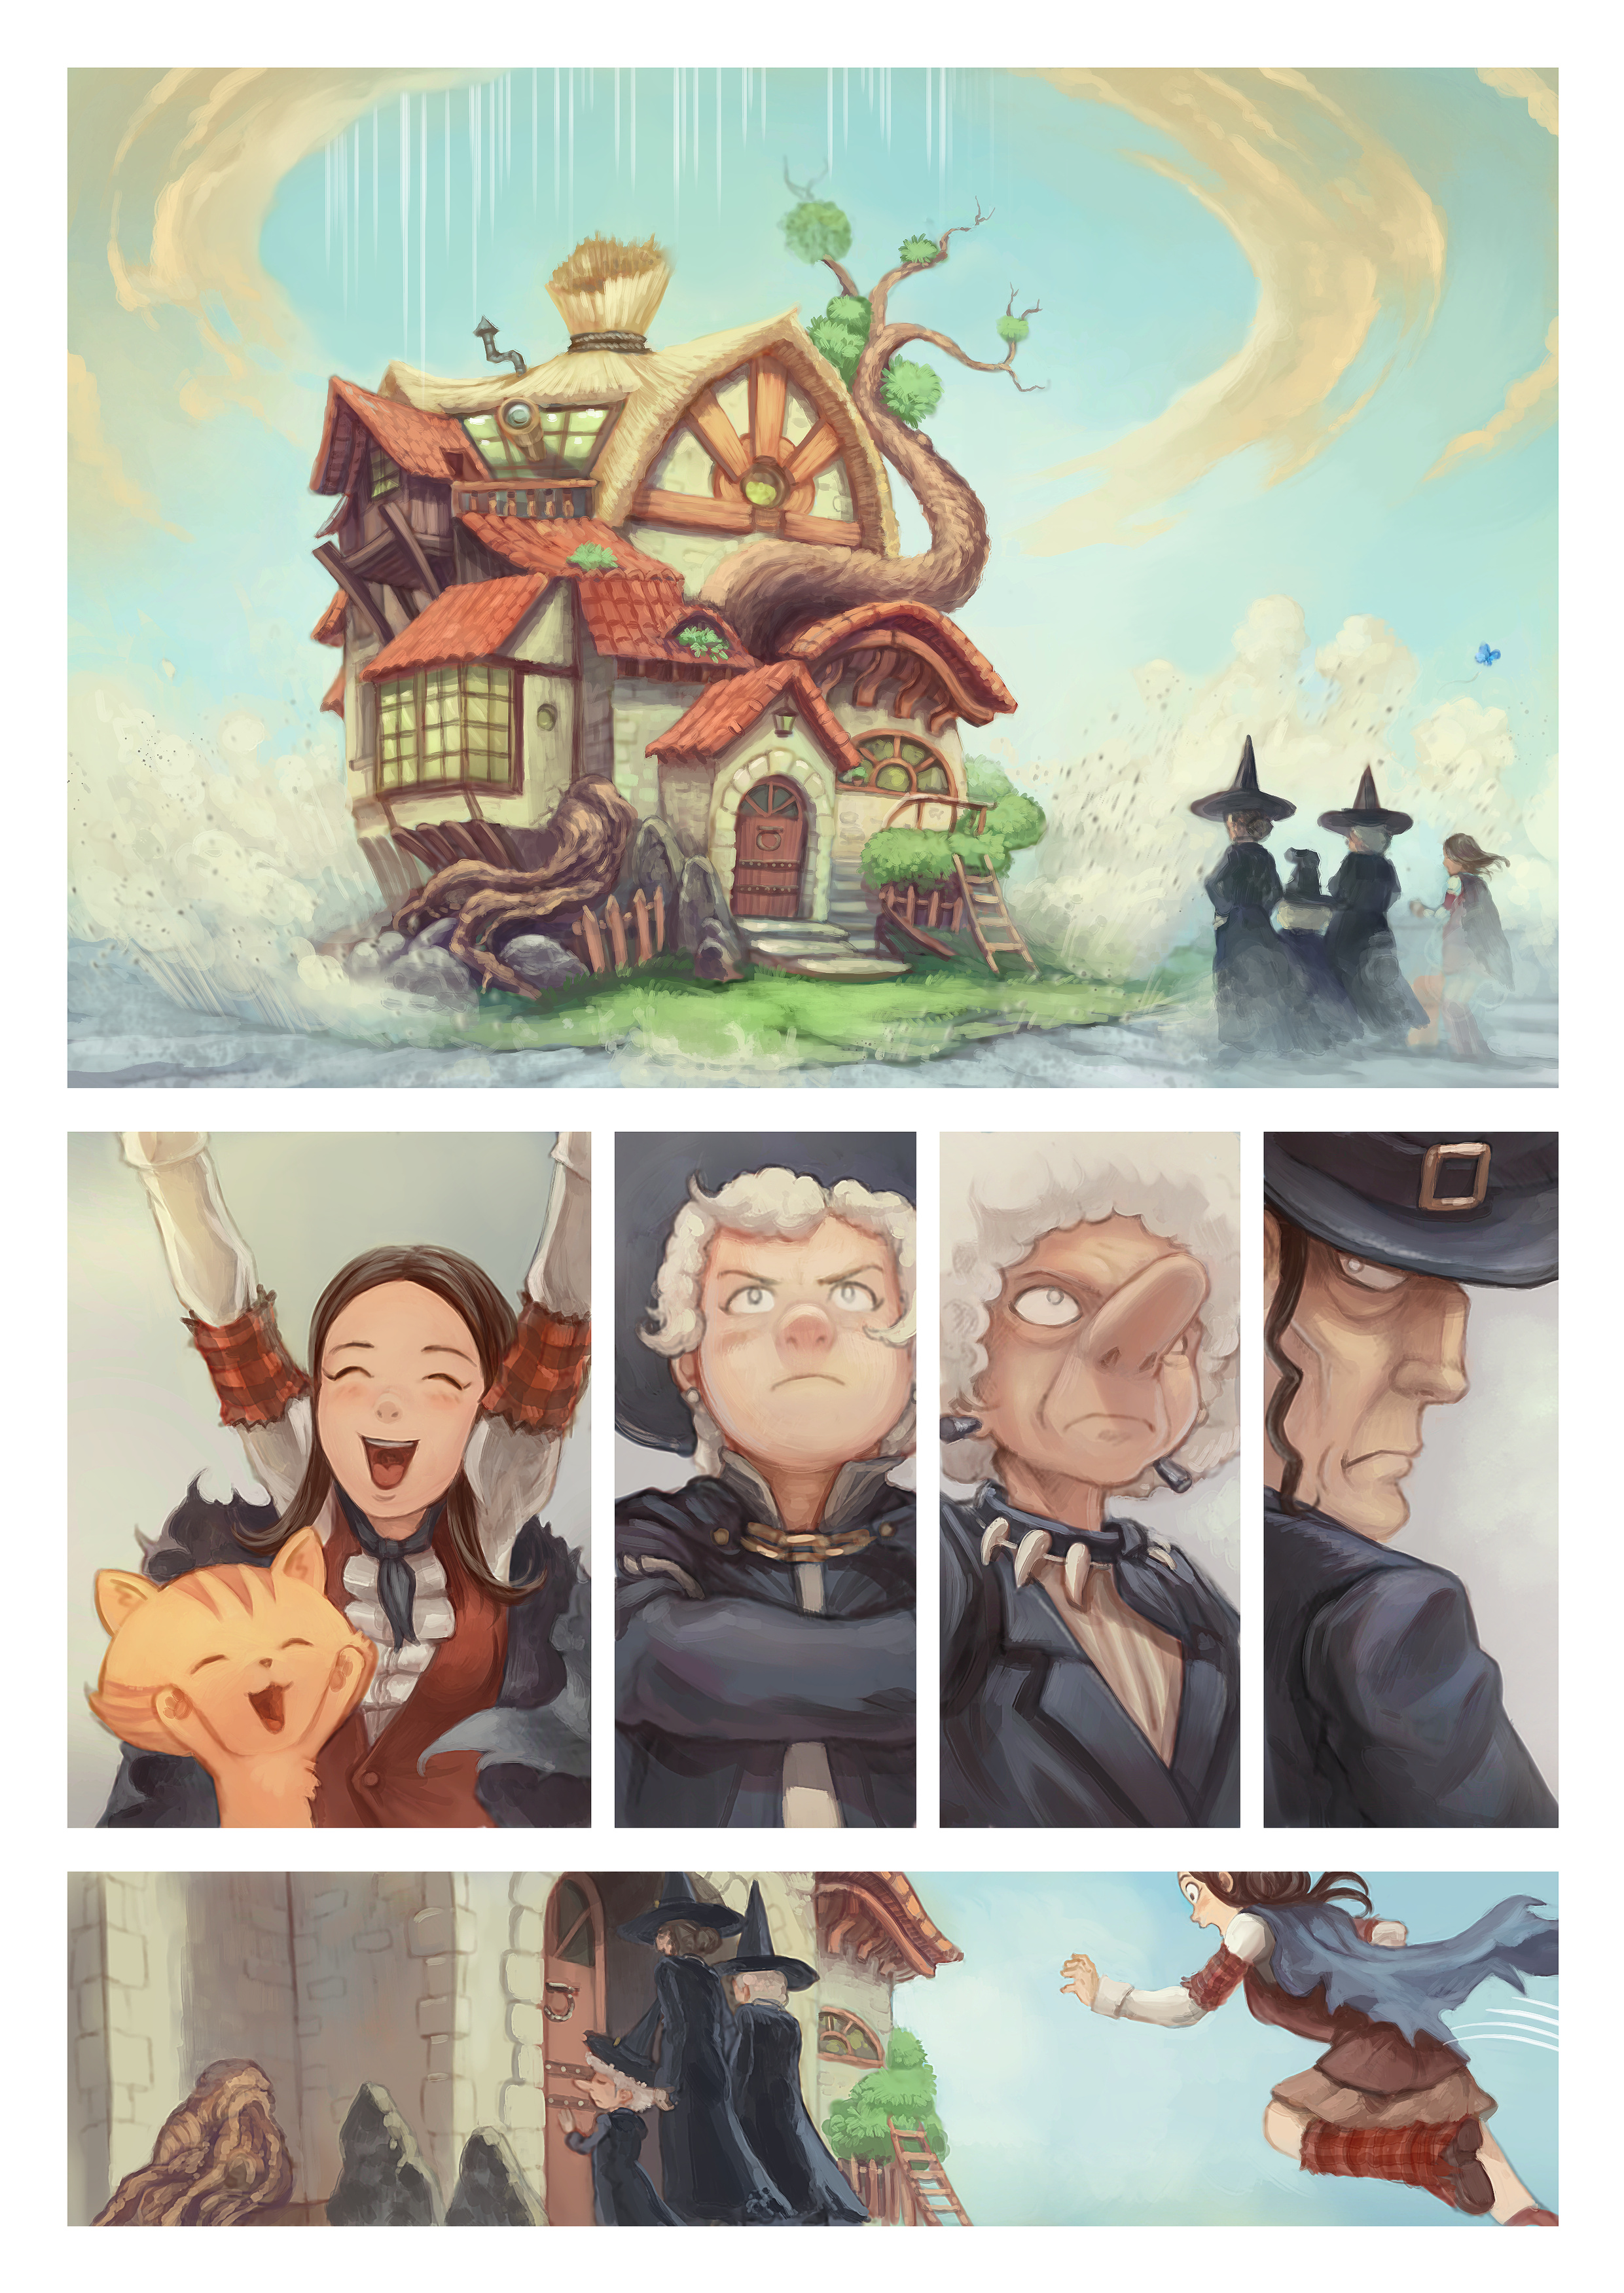 A webcomic page of Pepper&Carrot, 漫画全集 25 [cn], 页面 8